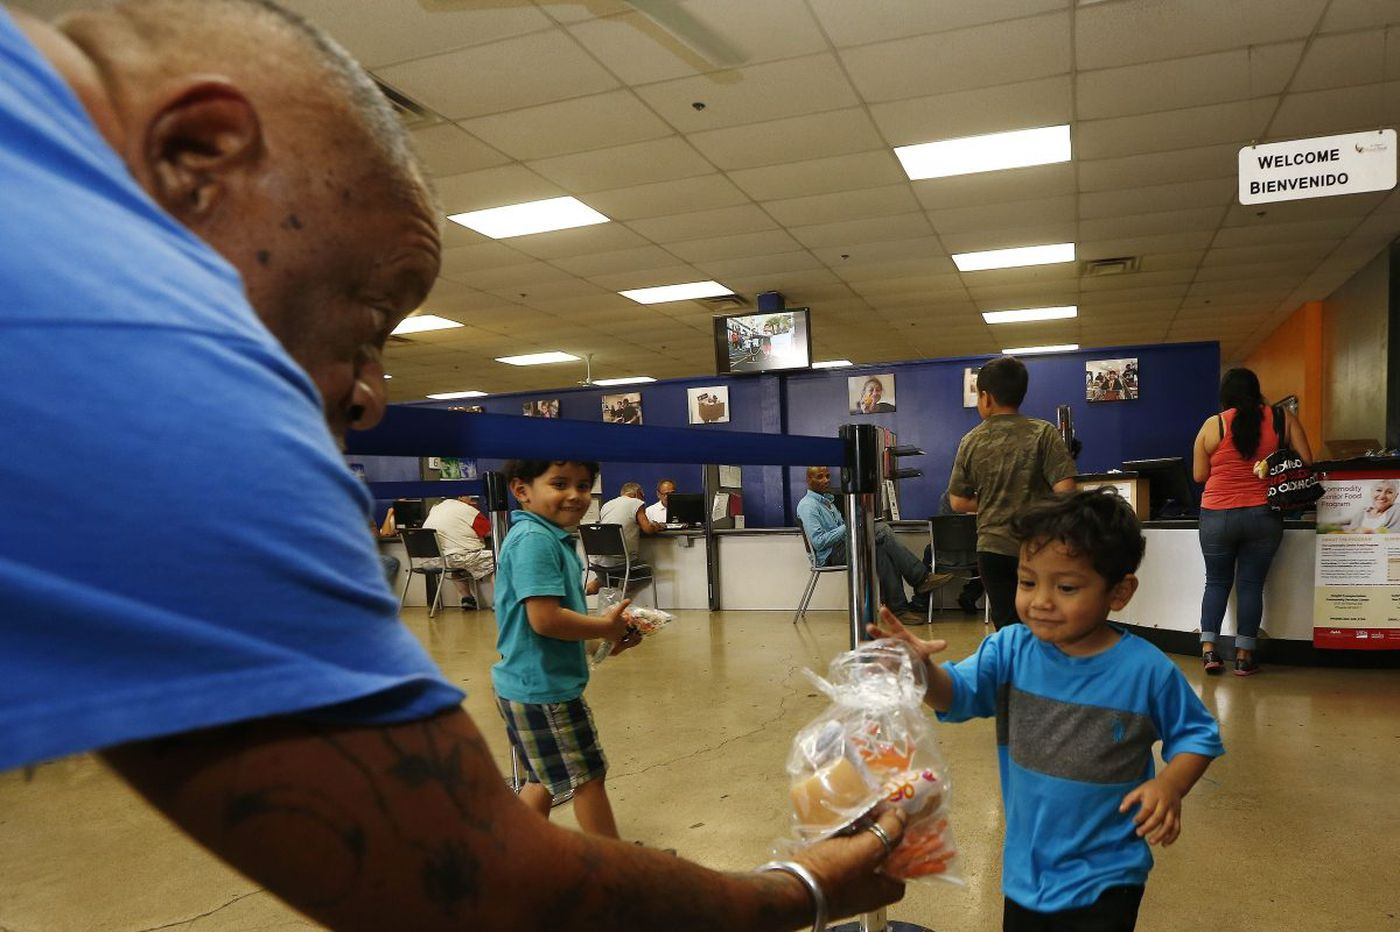 Can hospitals help bridge the partisan divide to feed hungry families?